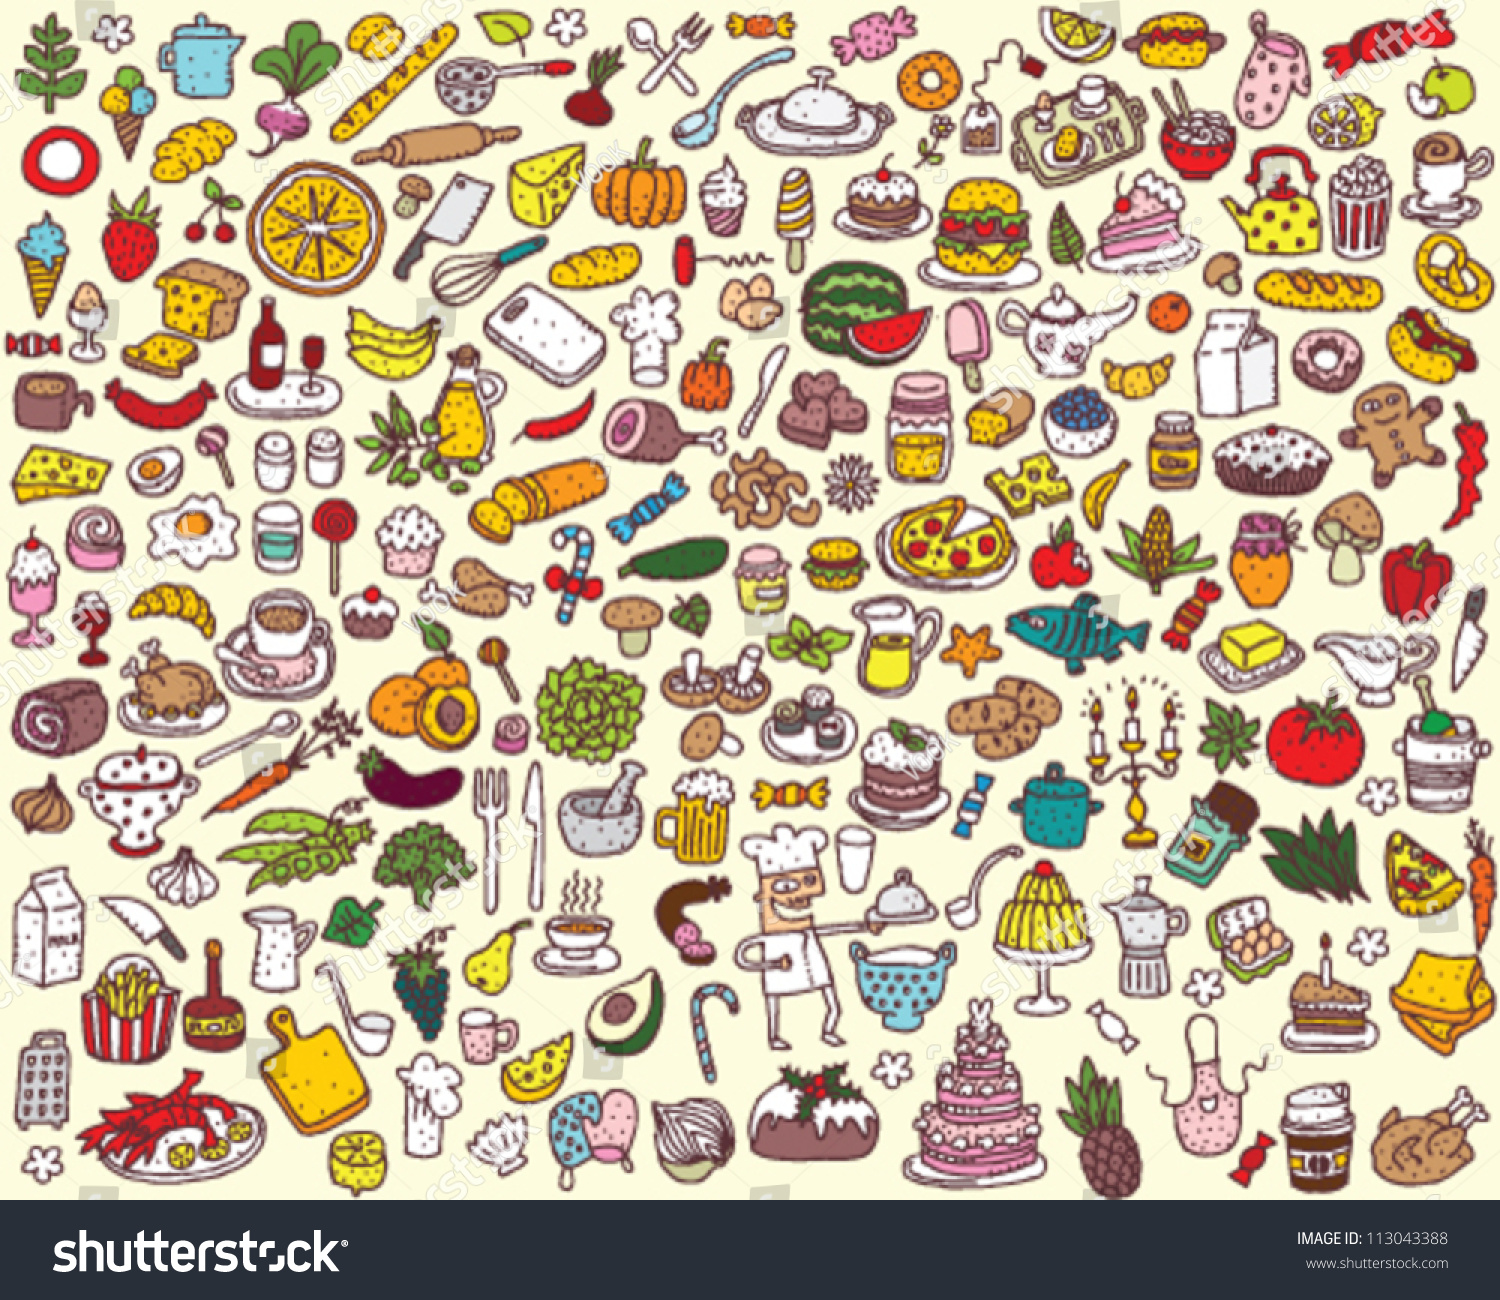 big food kitchen collection stock vector 113043388 shutterstock big food and kitchen collection